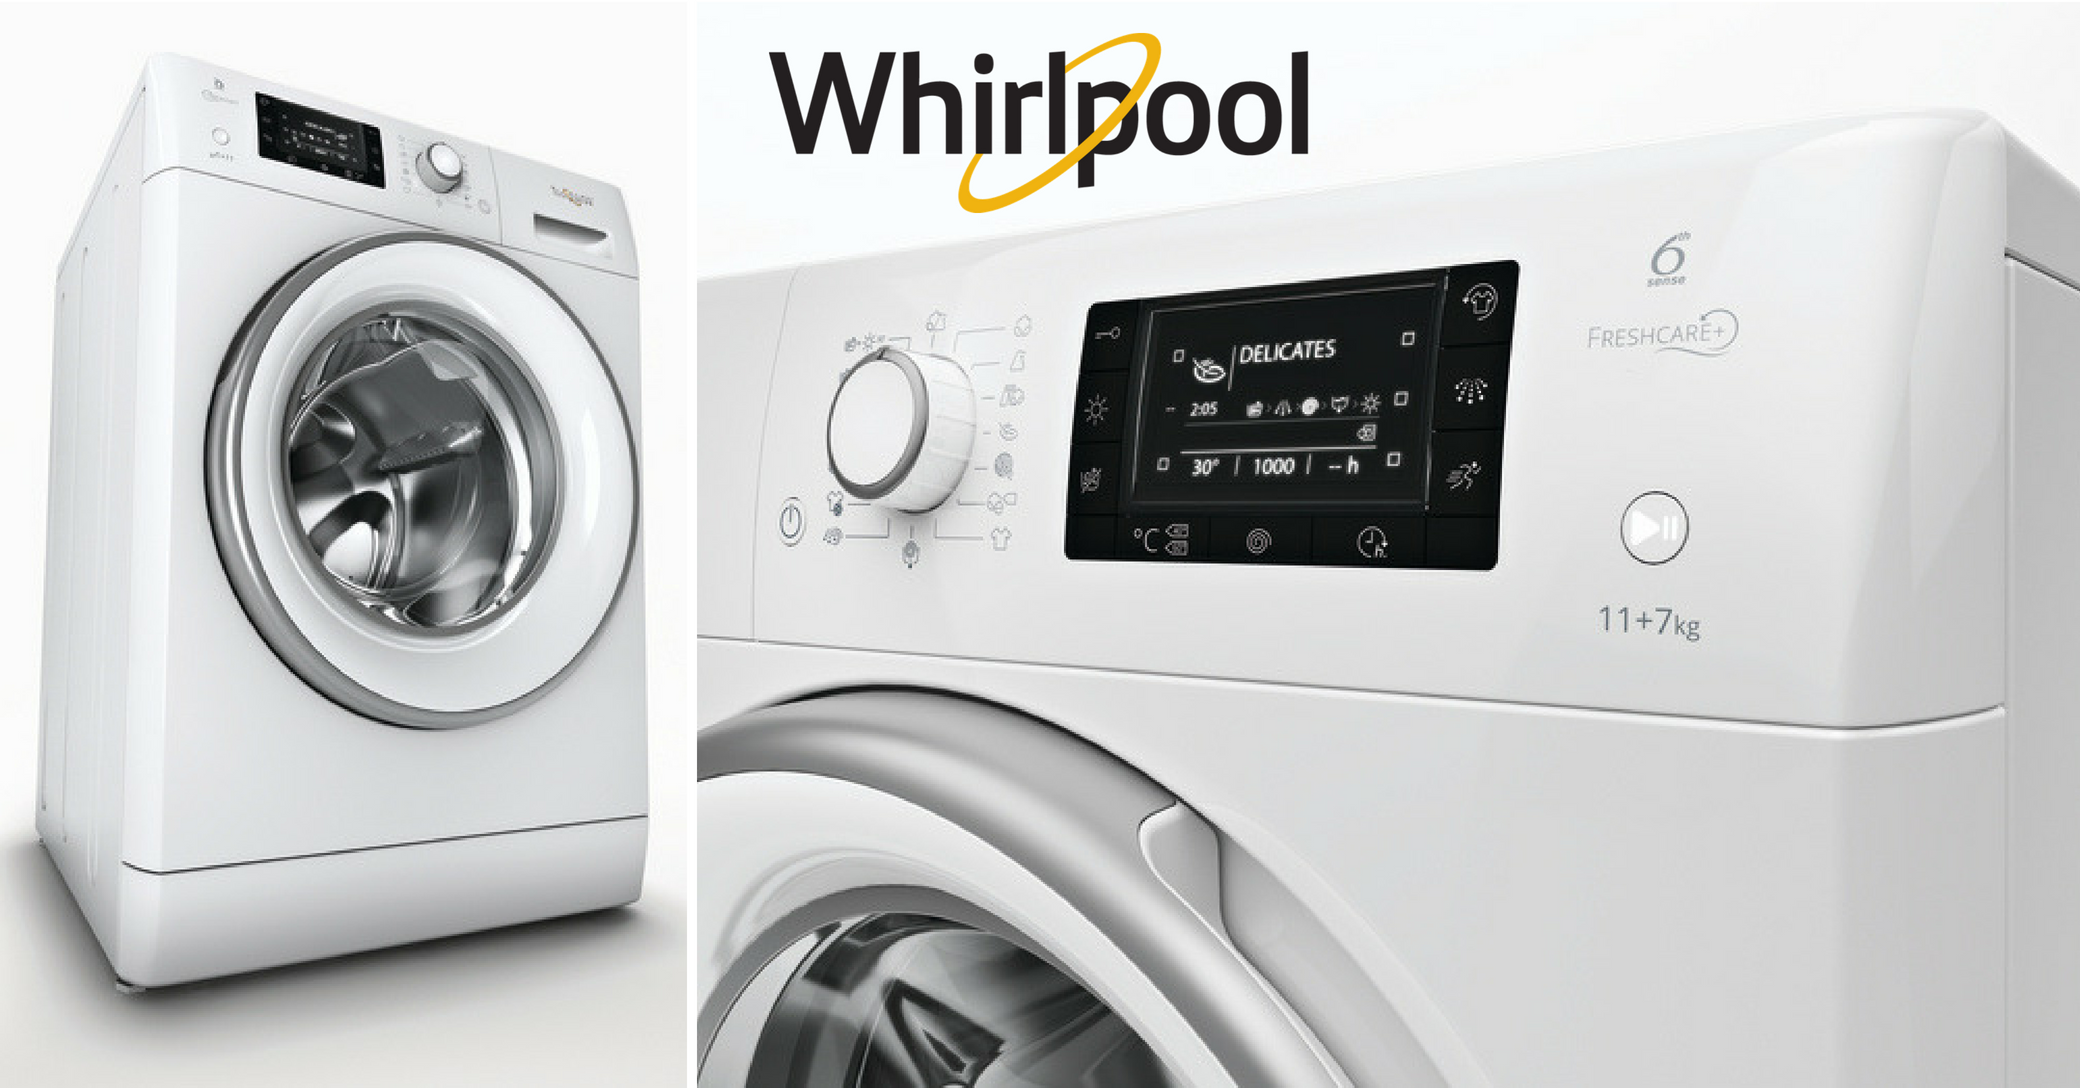 Whirlpool Fresh Care+ washer dryer